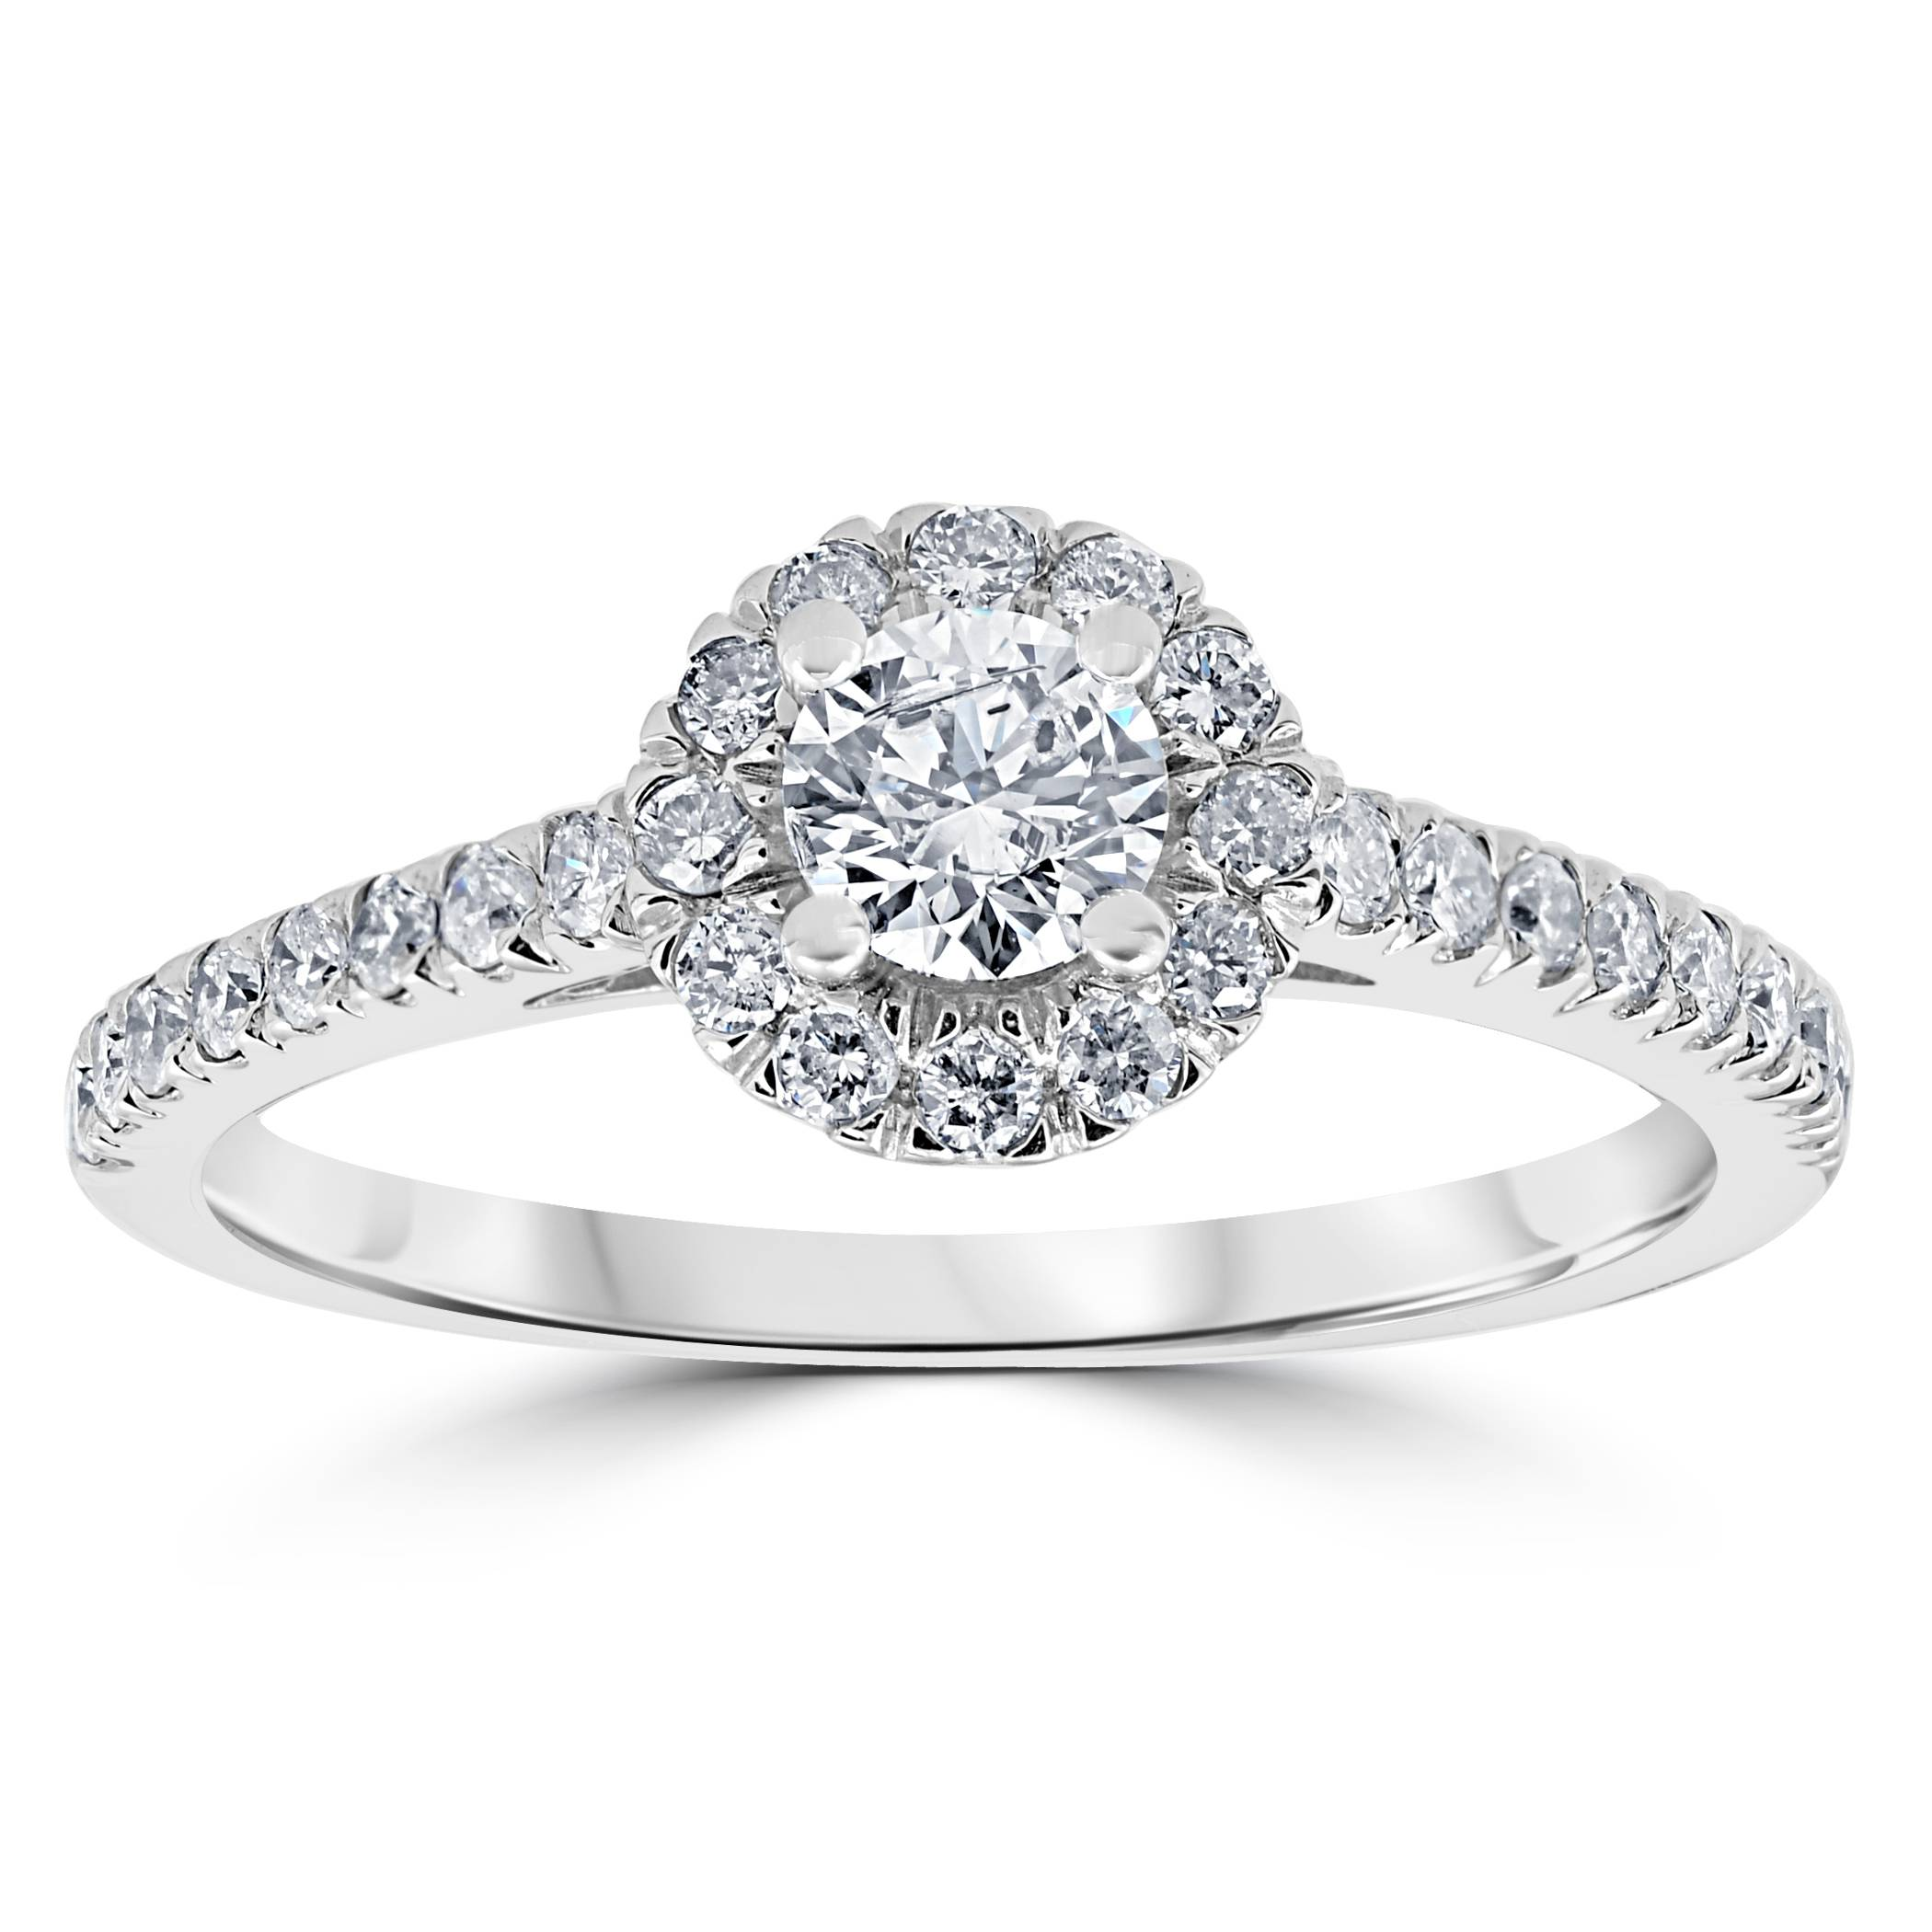 7 8ct halo lab created diamond engagement ring 14k white for Lab created diamond wedding rings